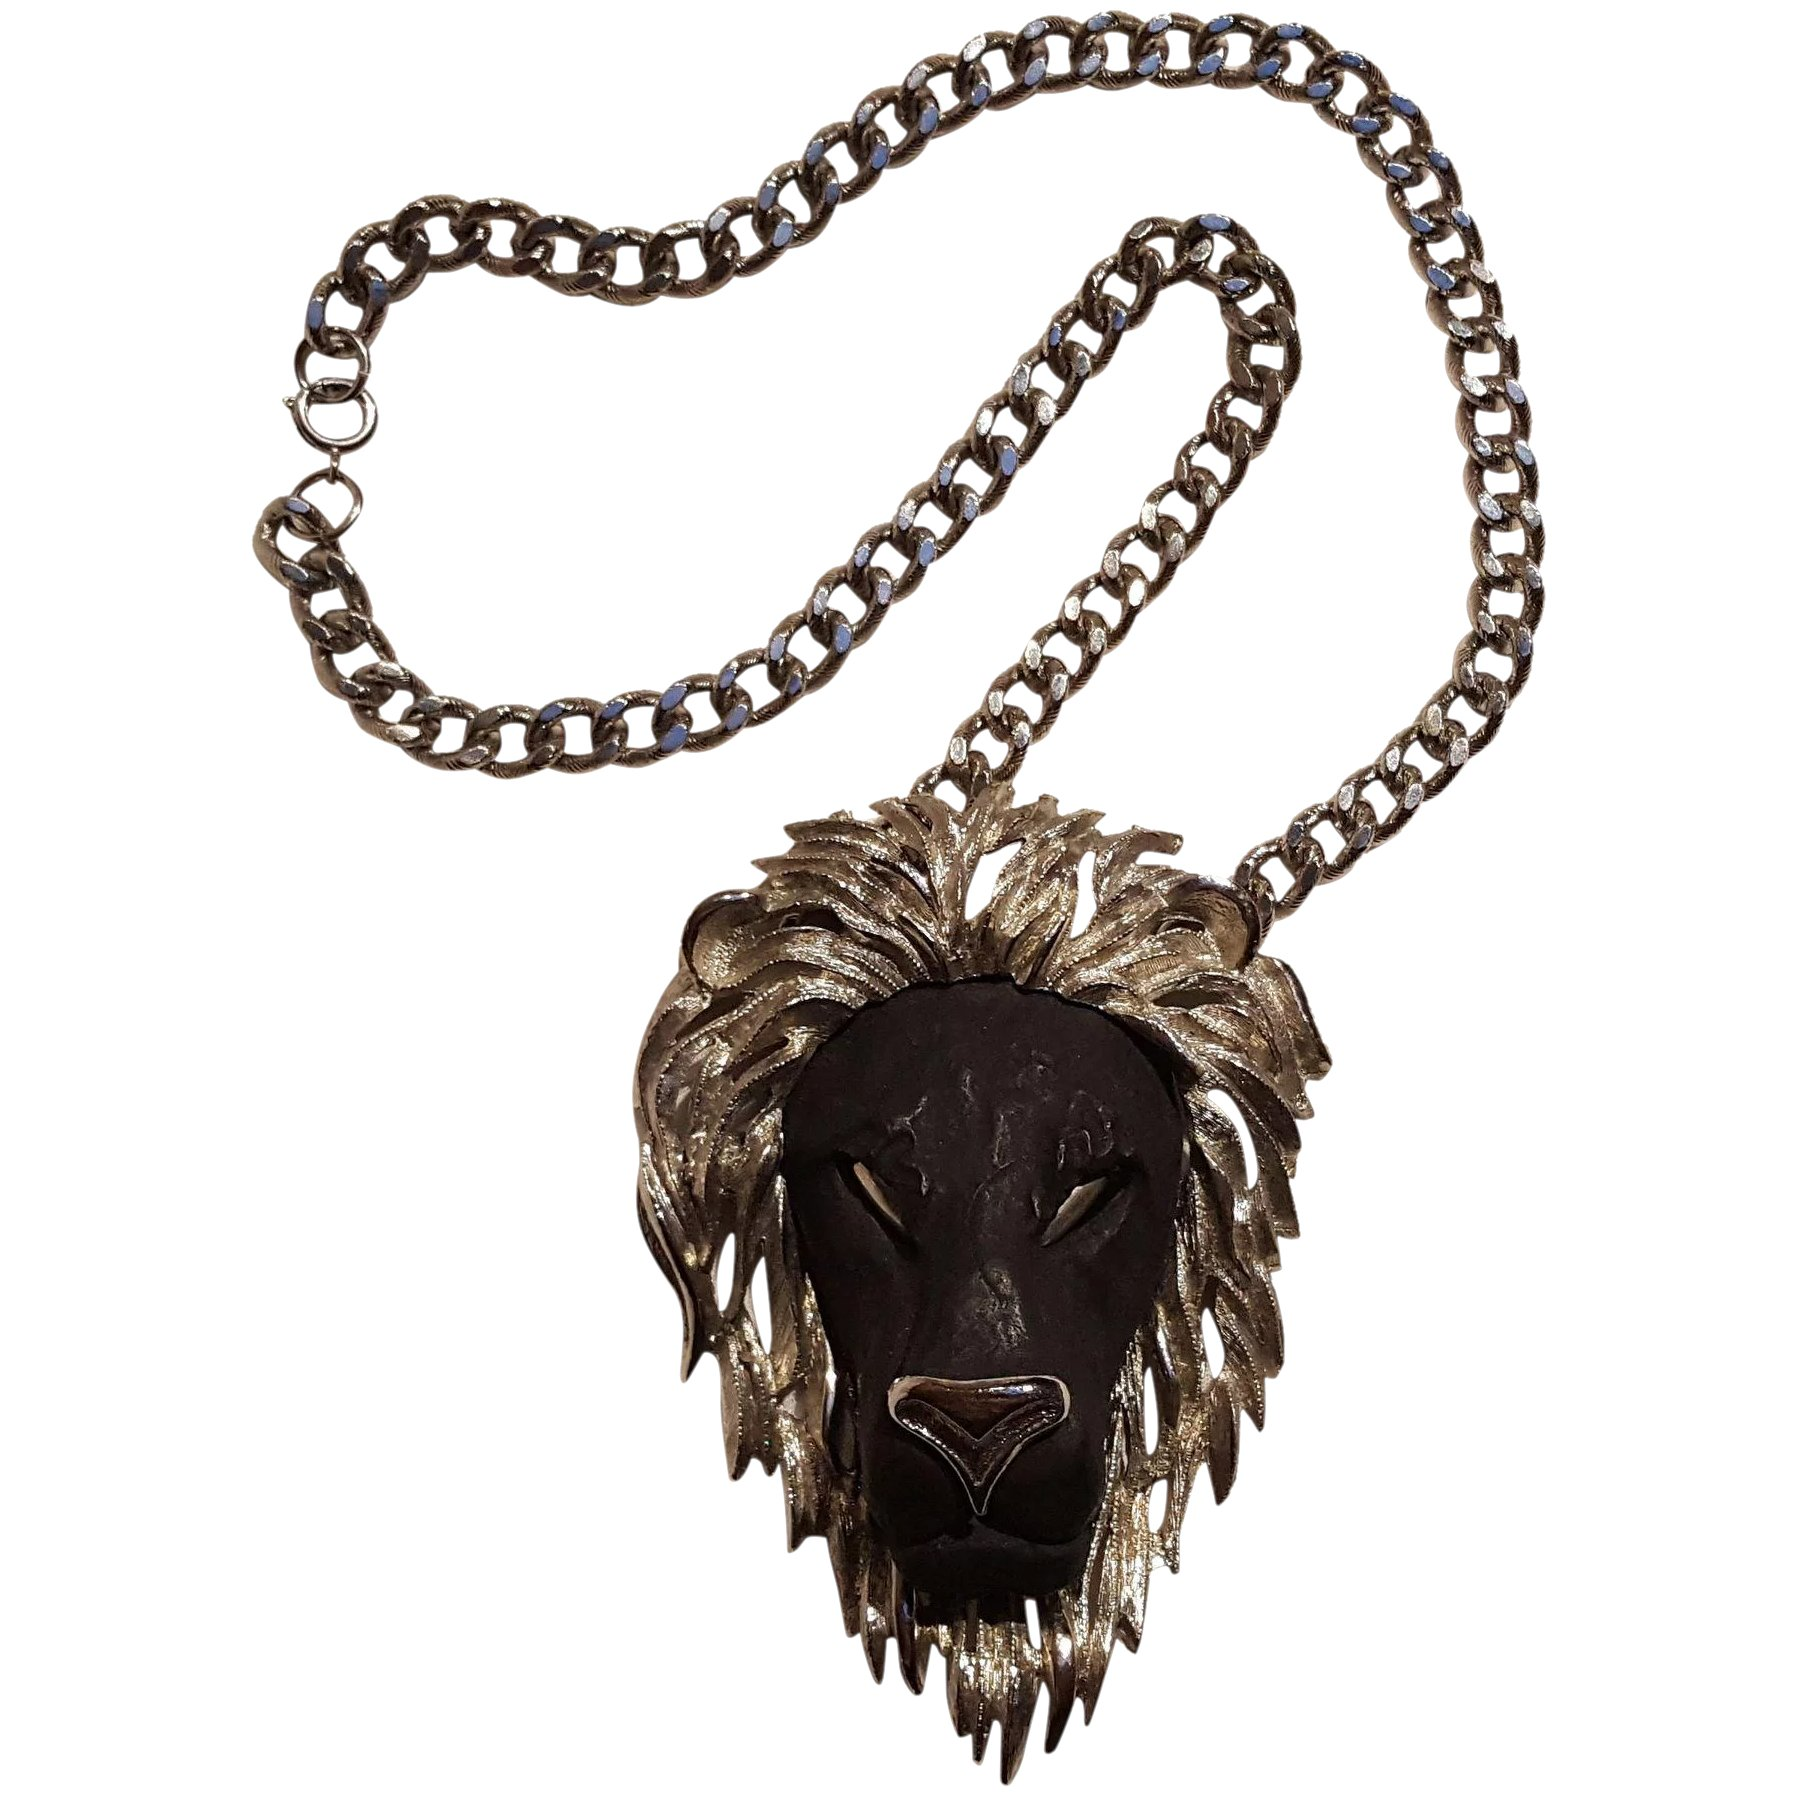 pendant ksh a house chao necklace beads wooden plastic product brown lion of